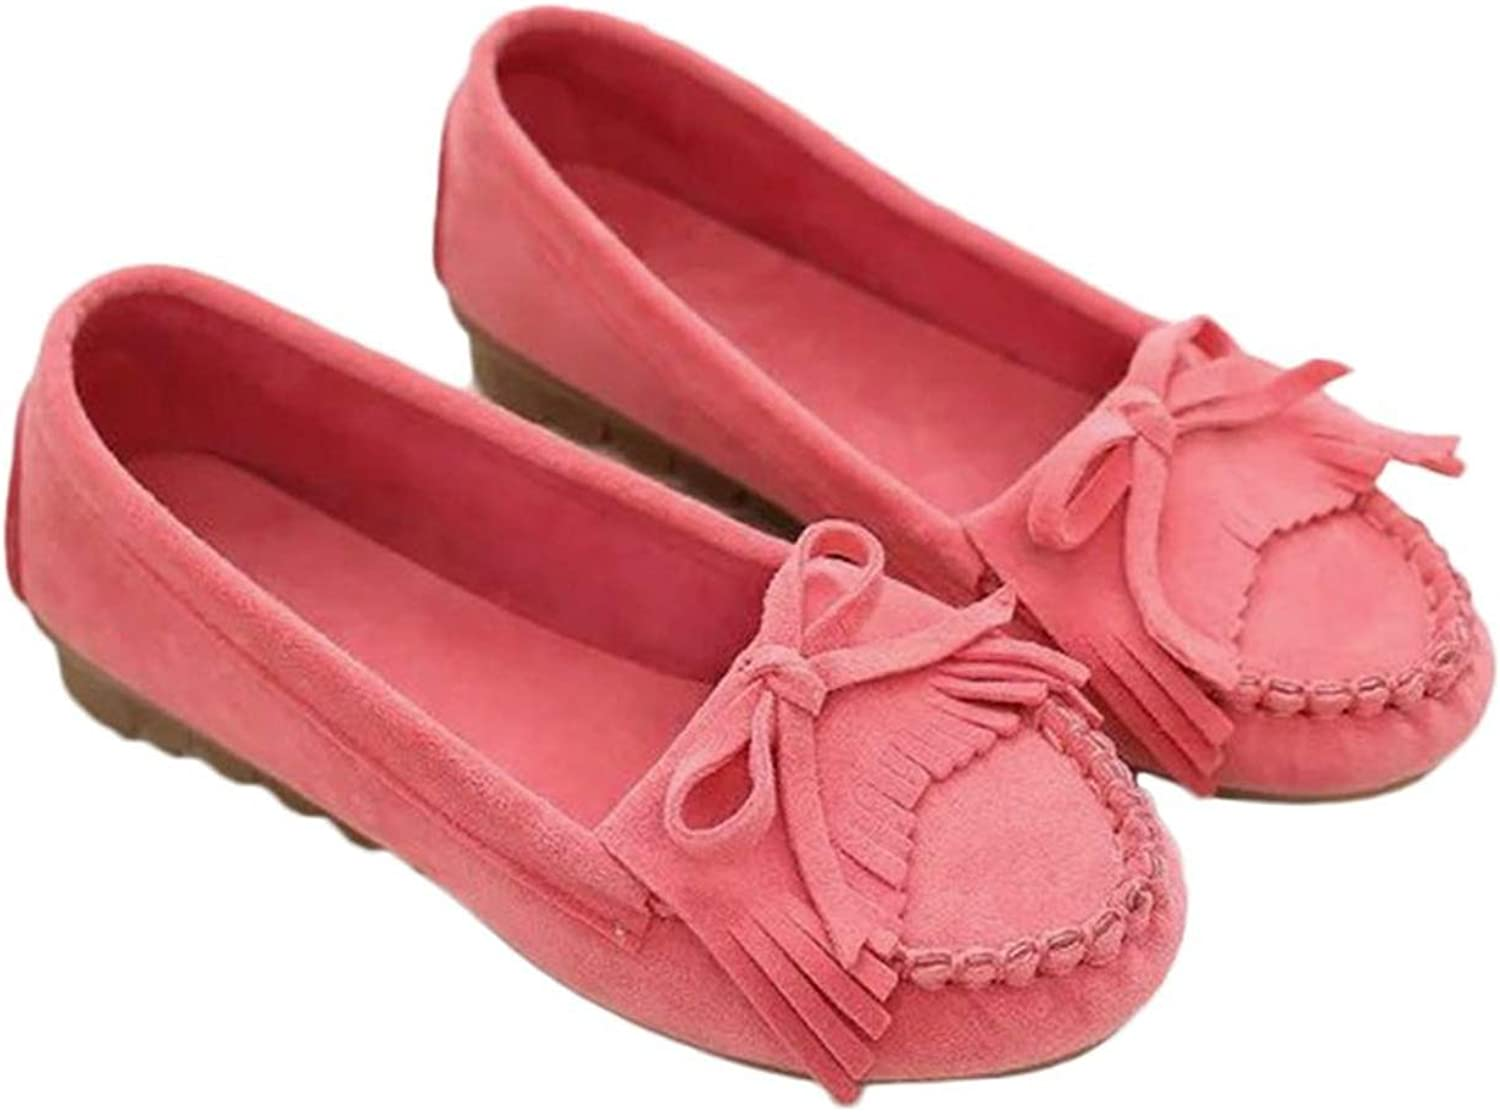 Spring Autumn Women Flat shoes Casual Round Head Tassel Anti-Slip Loafers Leisure